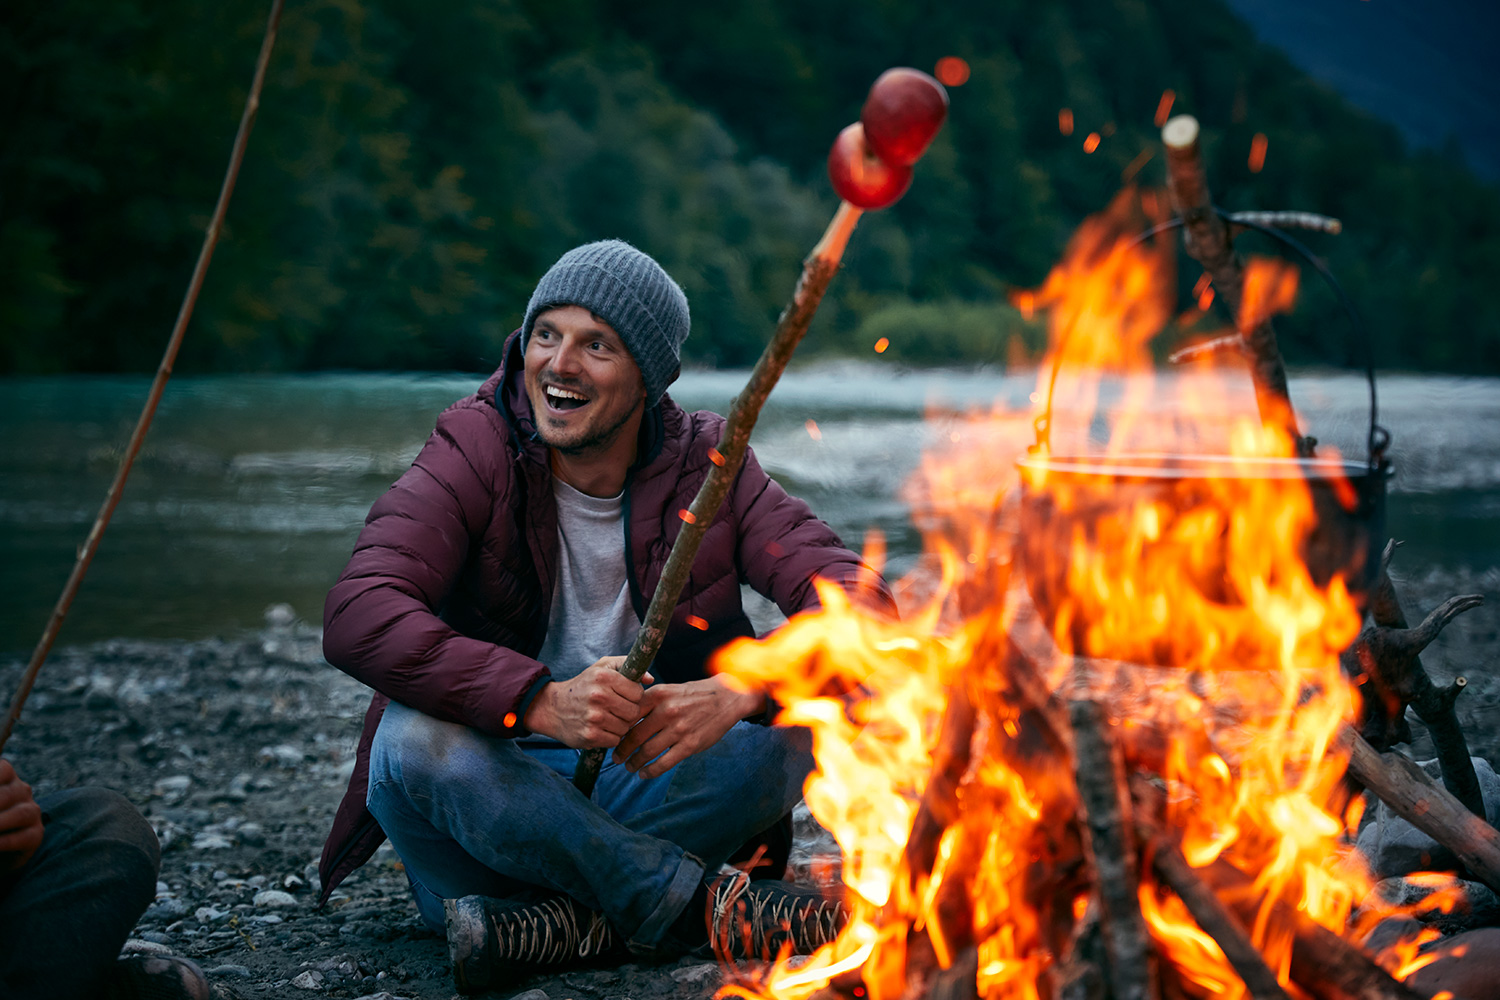 Man sitting around a campfire on the banks of a river, laughing and holding an apple on a stick